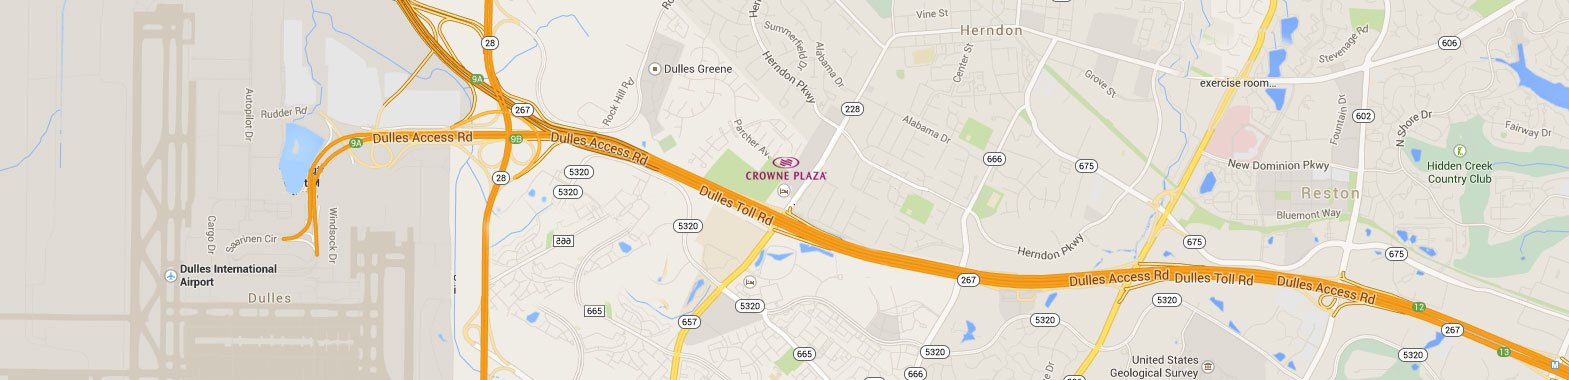 Crowne Plaza Dulles Airport Hotel Location